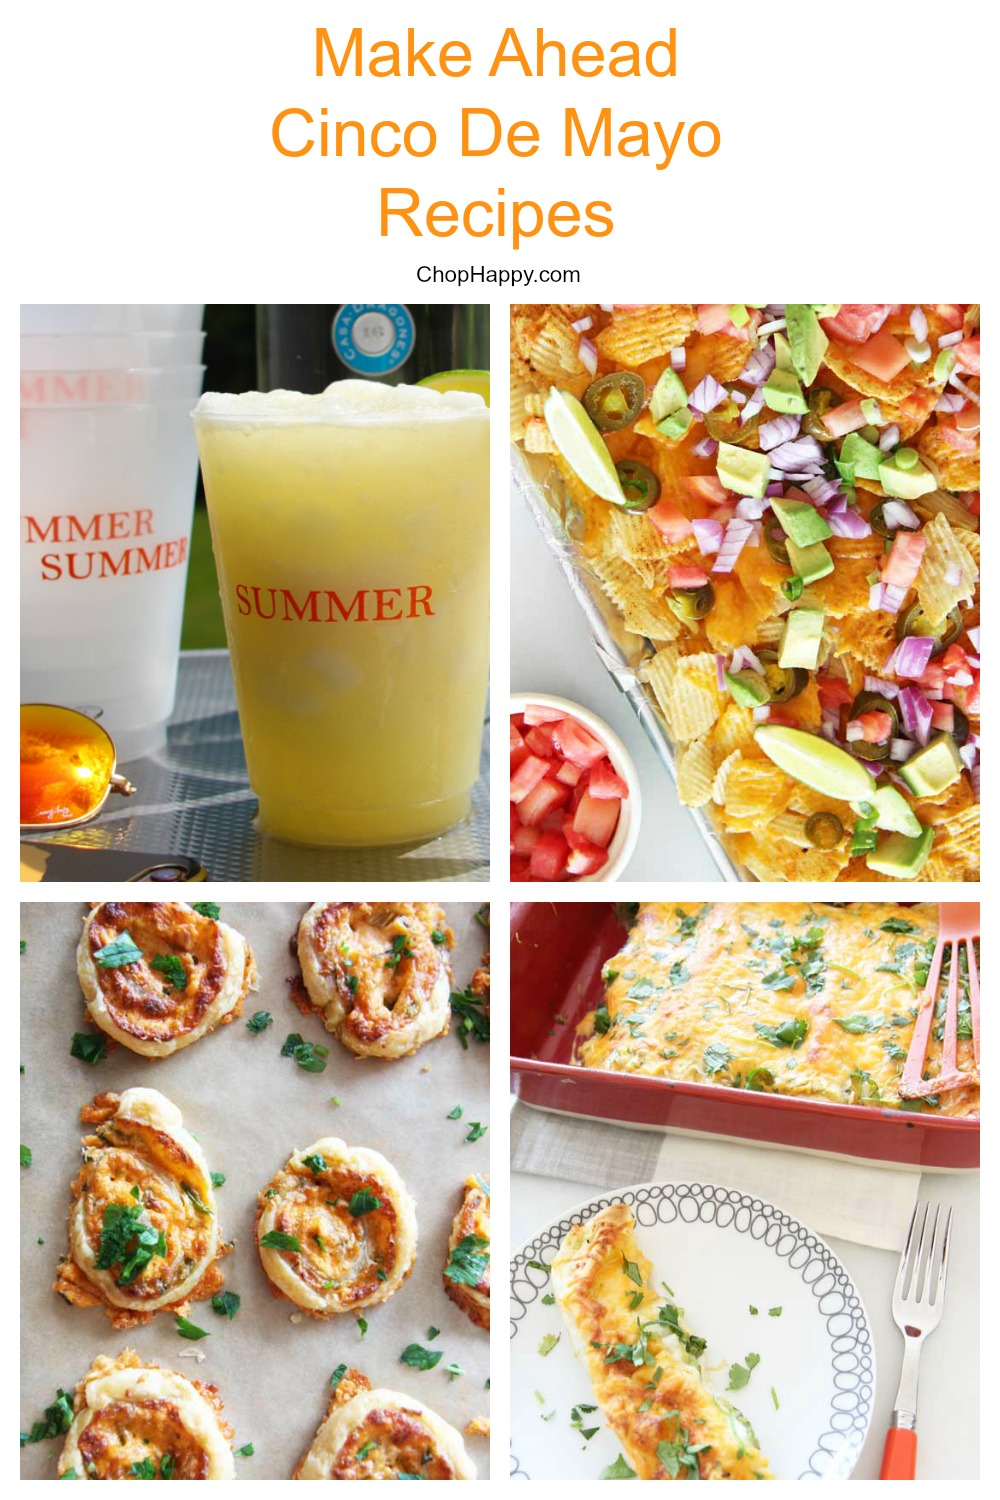 Make Ahead Cinco De Mayo Recipes (from cocktail to desserts)